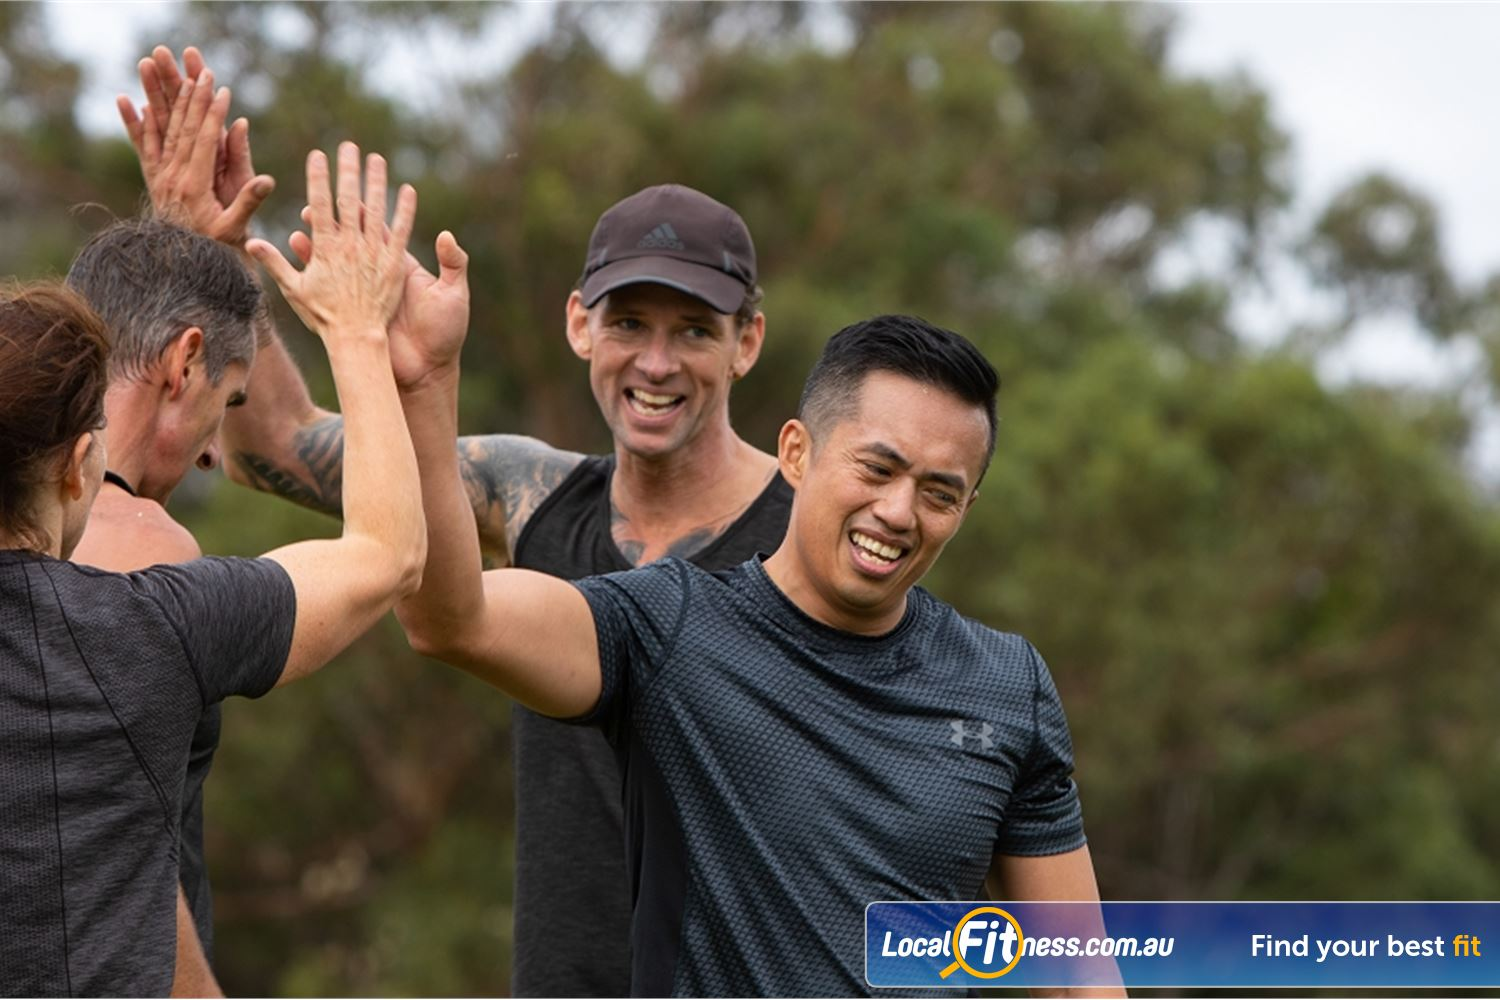 Step into Life Near Essendon North Join like minded people in our Essendon outdoor fitness community.